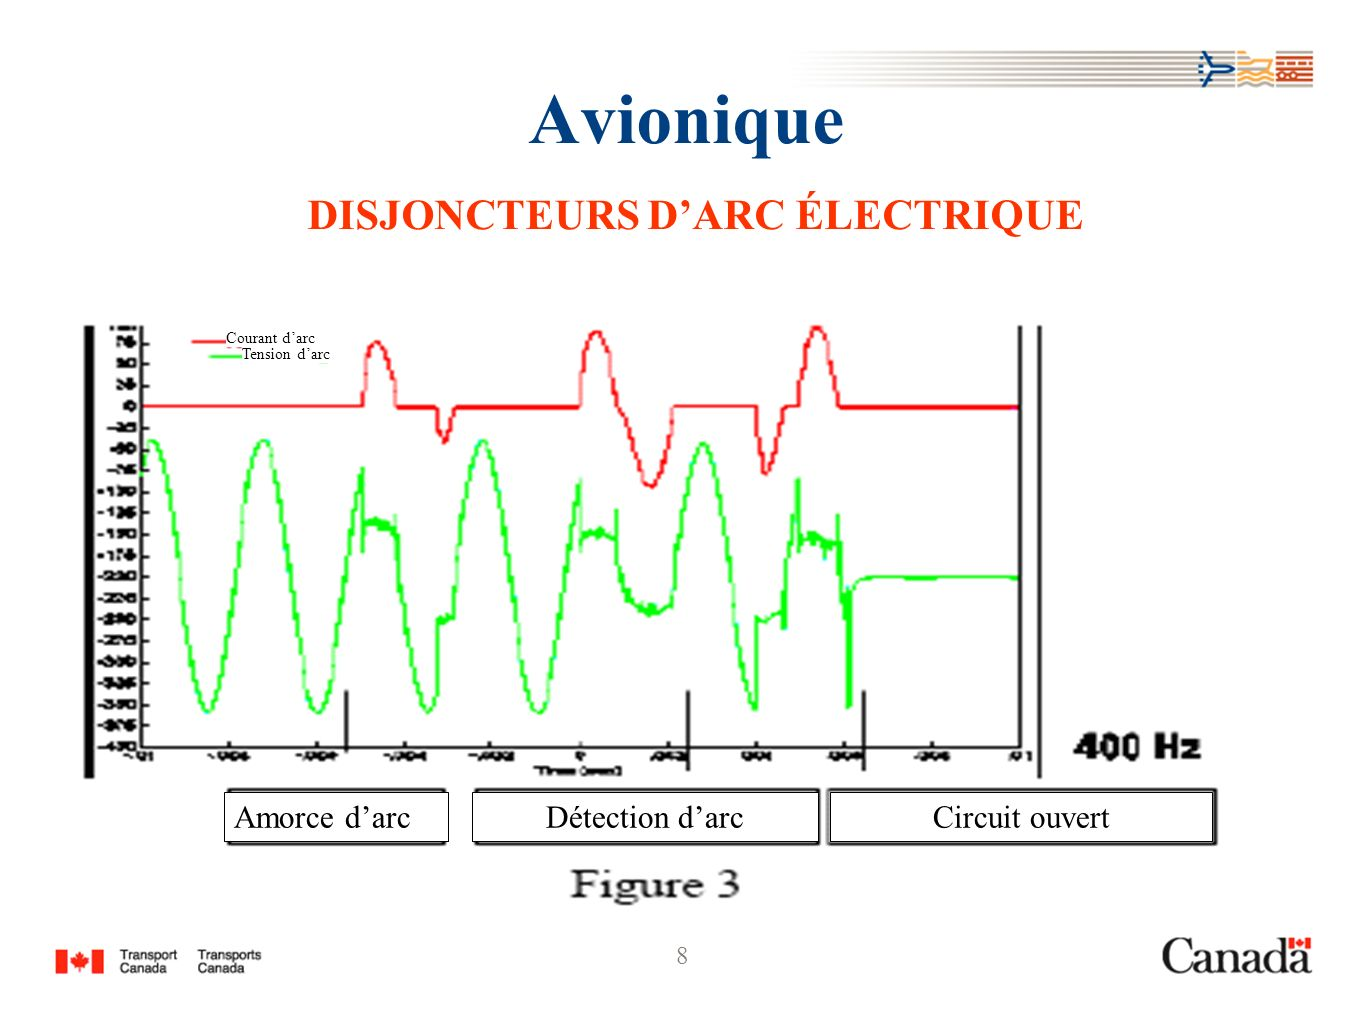 8 Avionique DISJONCTEURS DARC ÉLECTRIQUE Amorce darc Courant darc Circuit ouvertDétection darc Tension darc